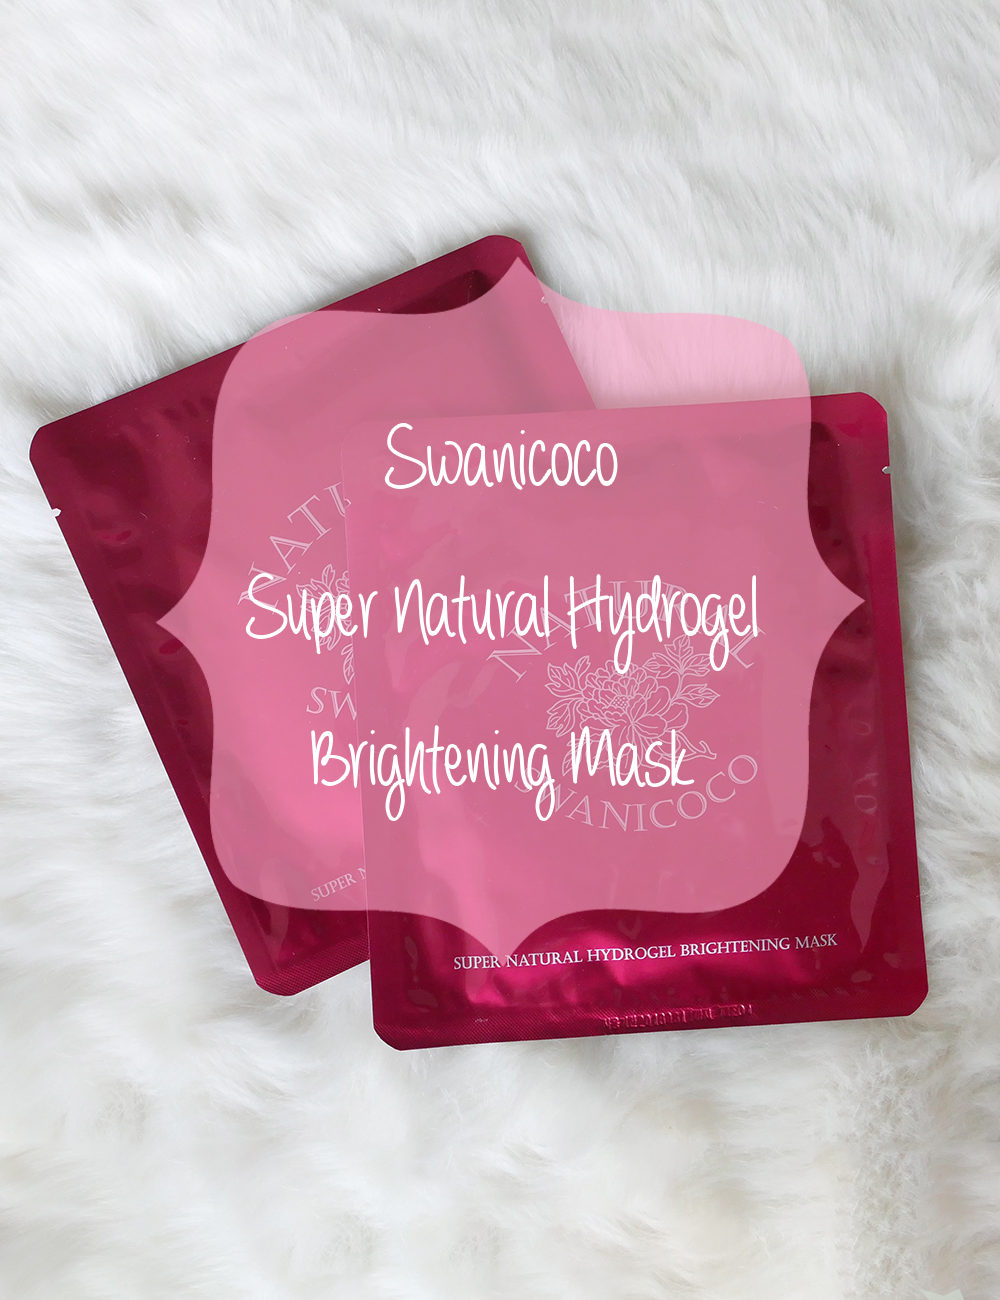 Swanicoco Super Natural Hydrogel Brightening Mask